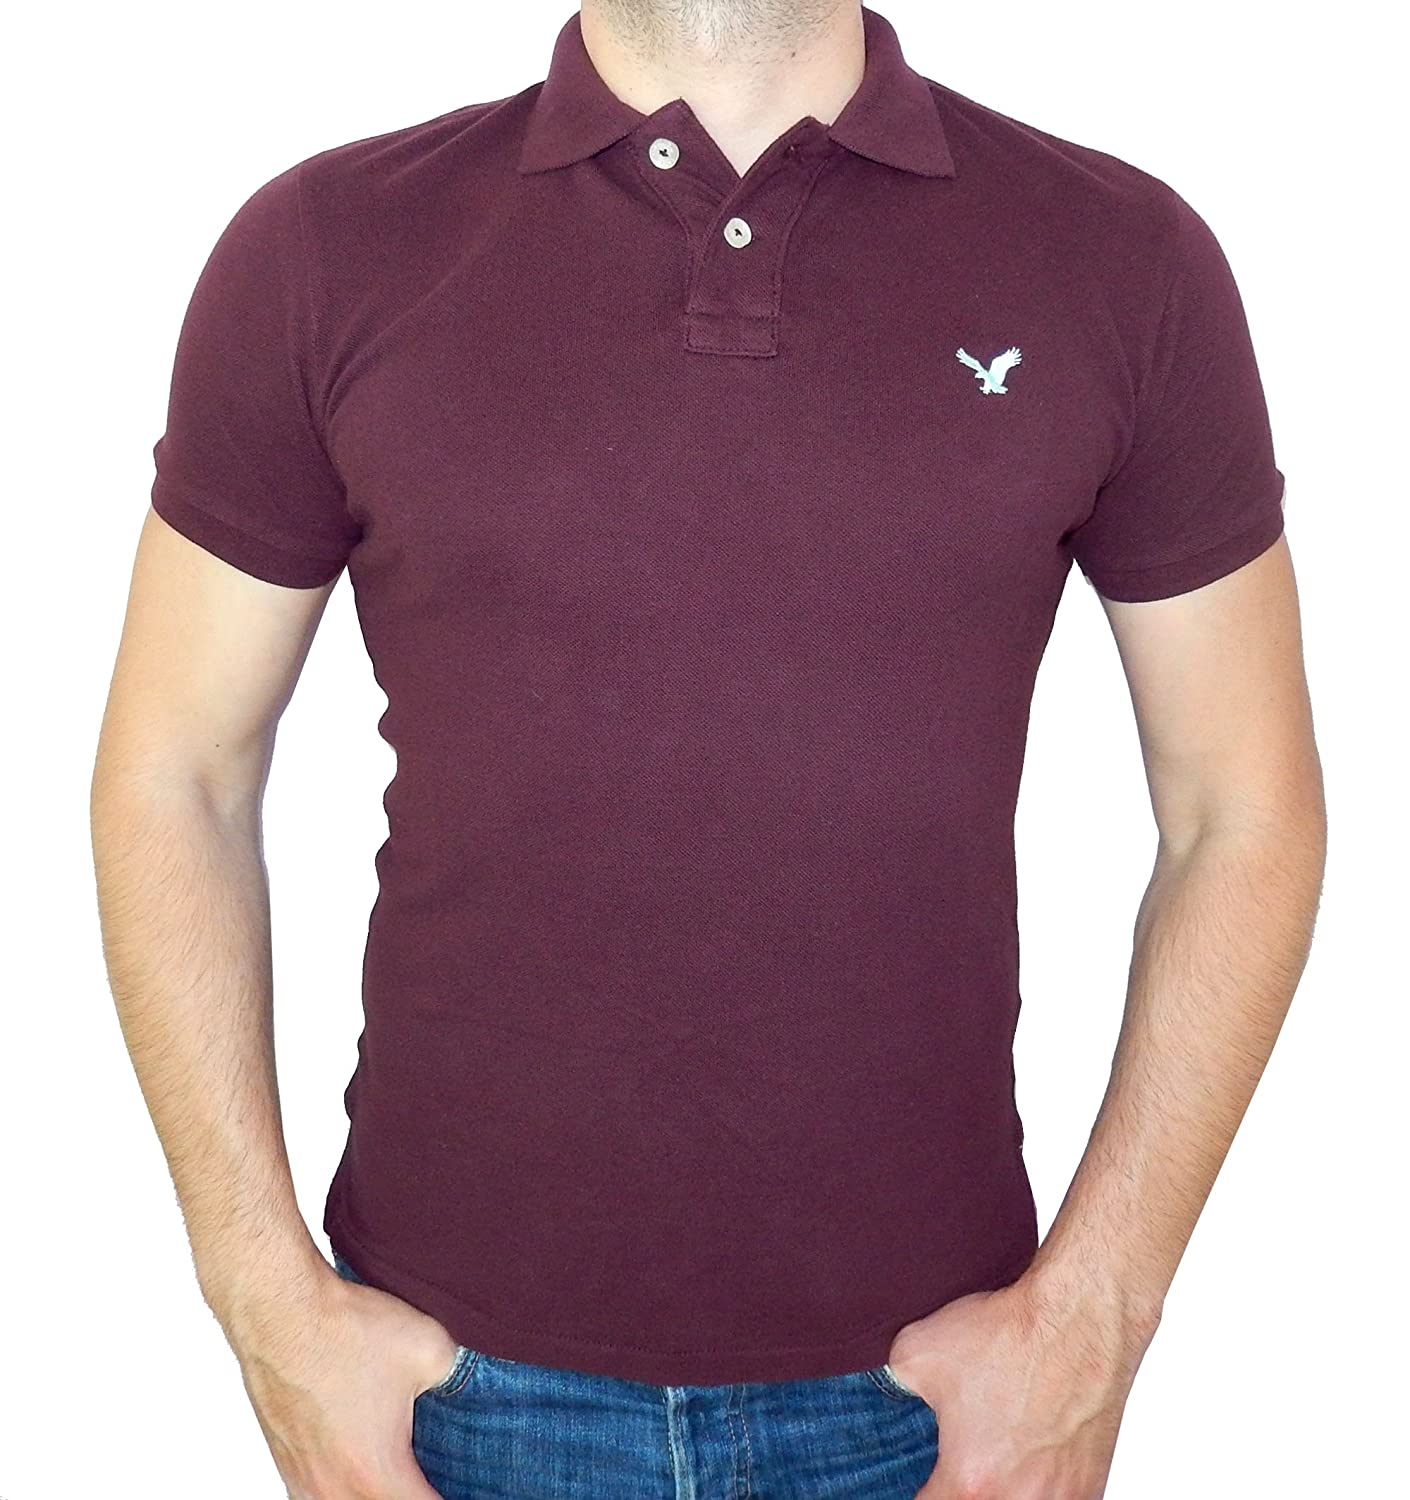 american-eagle-outfitters-mens-classic-fit-mesh-solid-polo-t-shirt